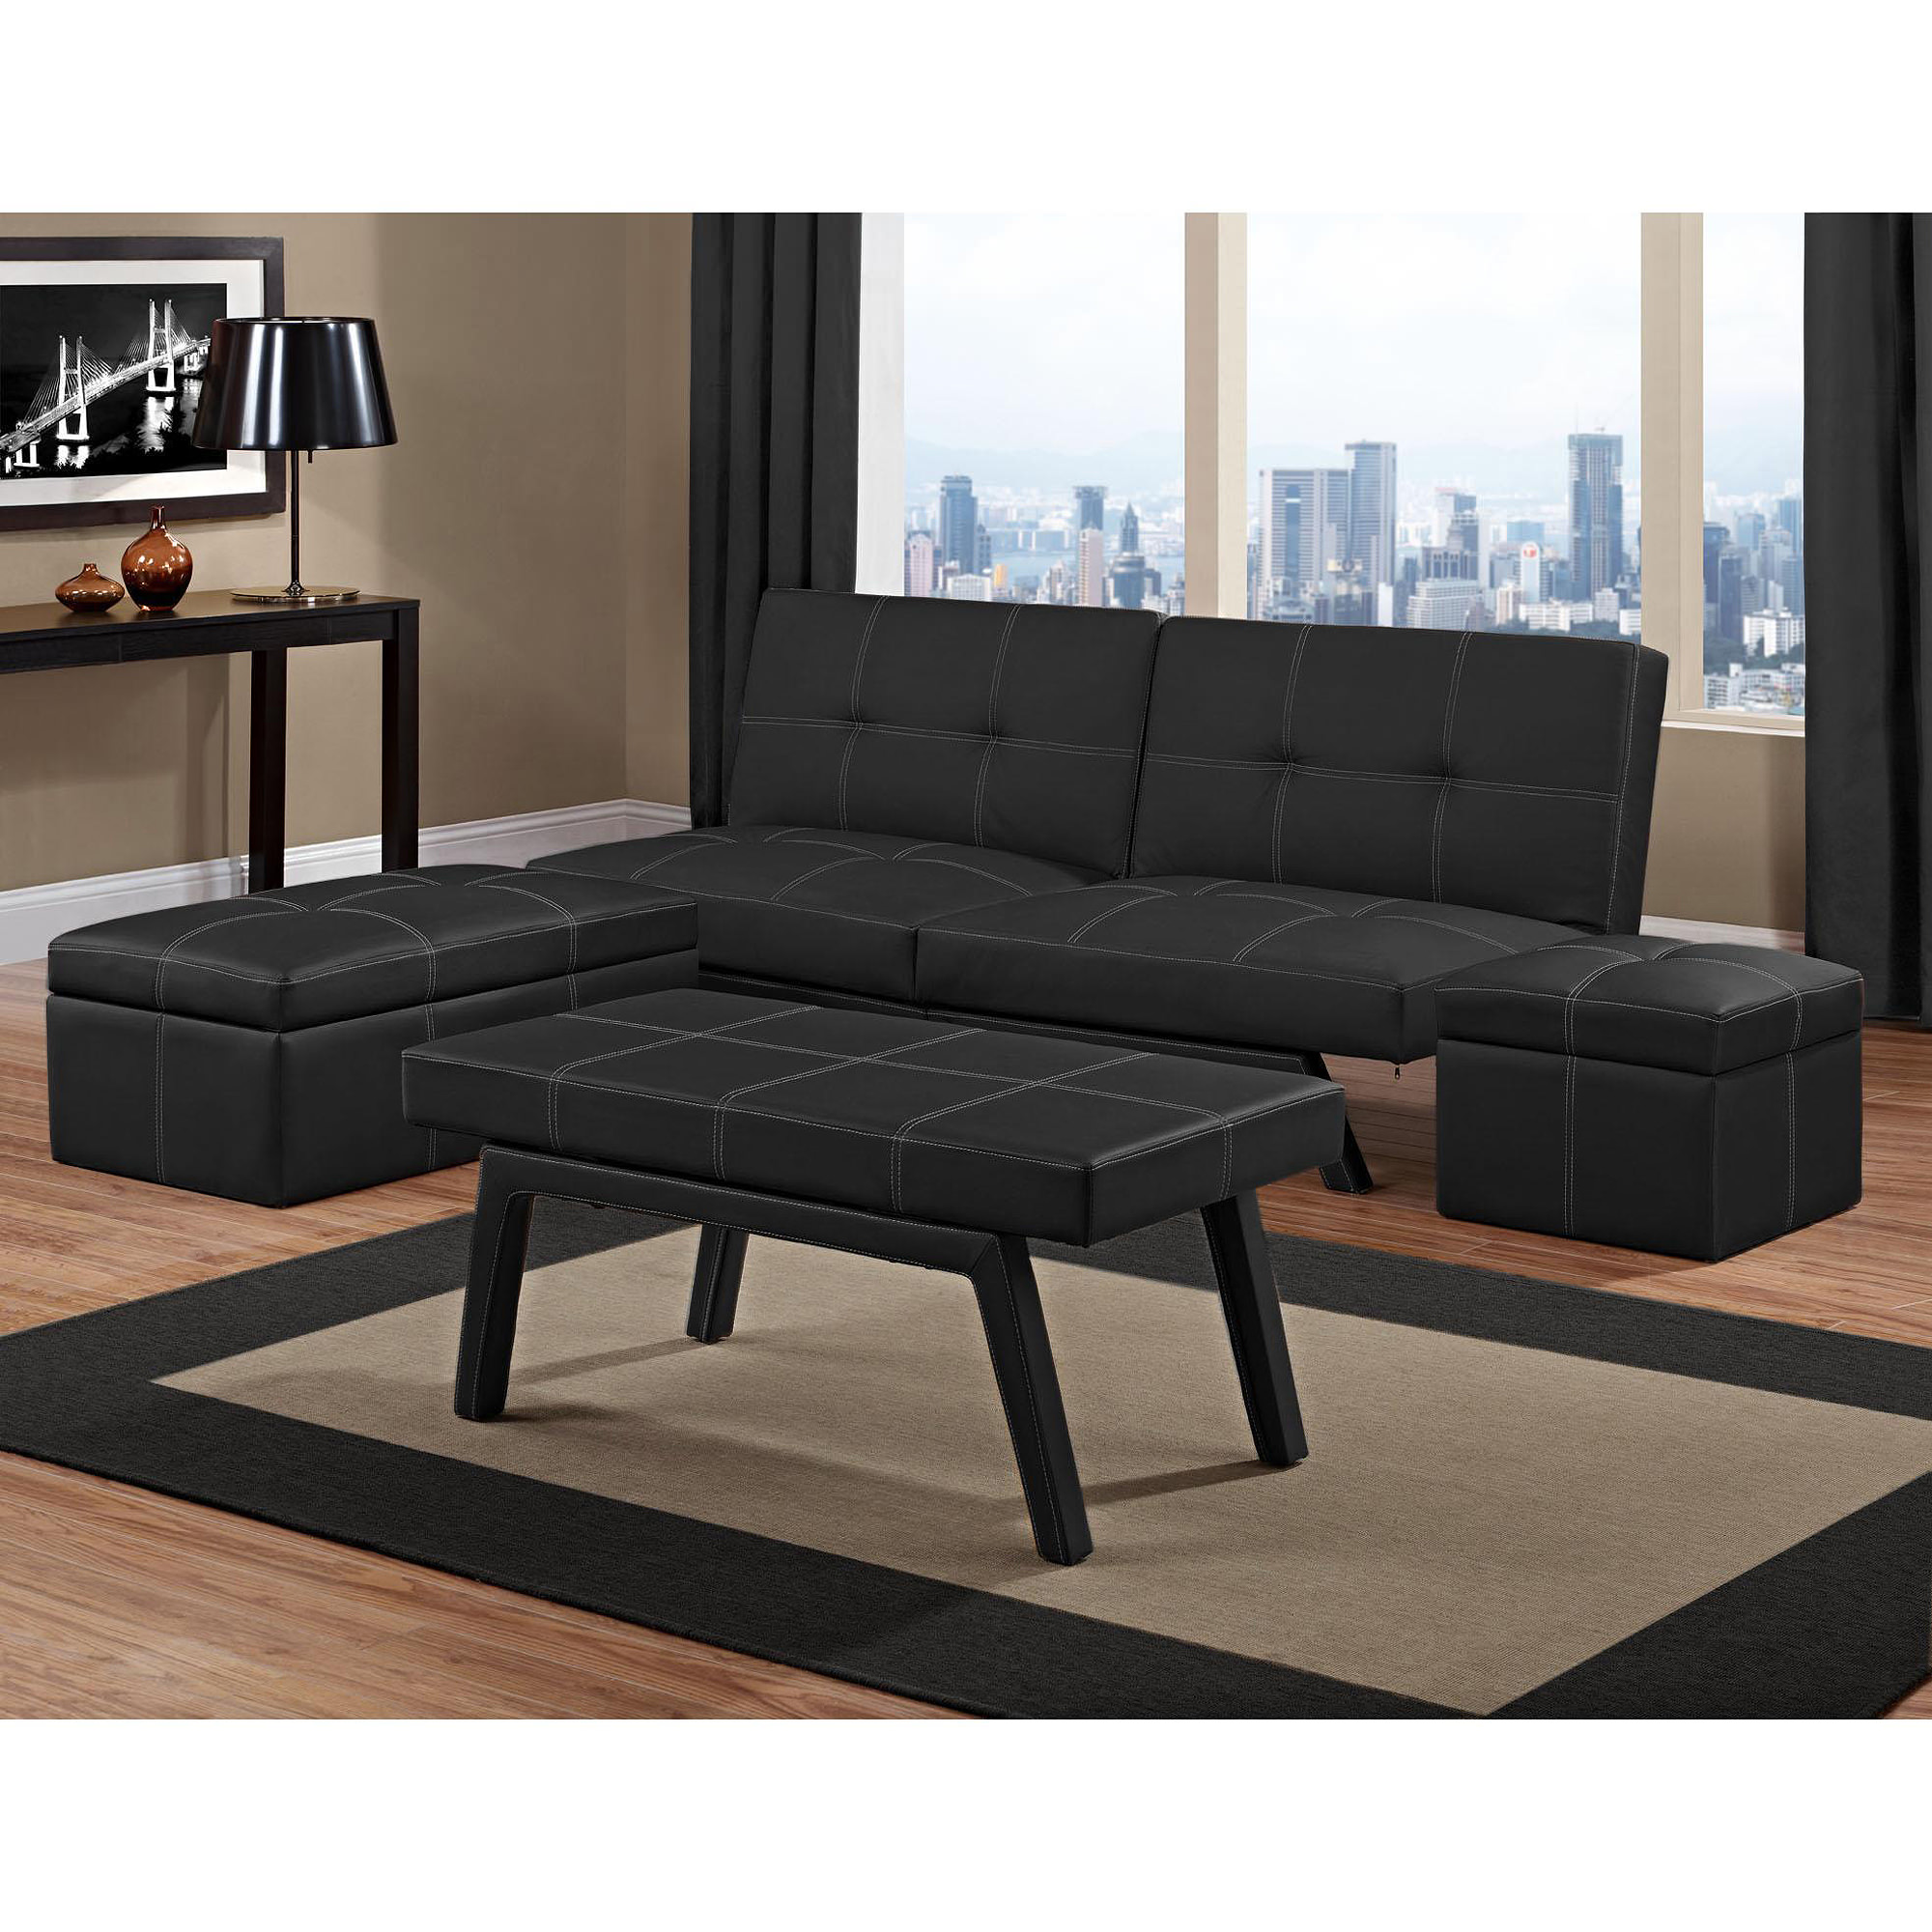 Perfect Couch Vs Sofa 37 On Living Room Sofa Inspiration with Couch Vs Sofa